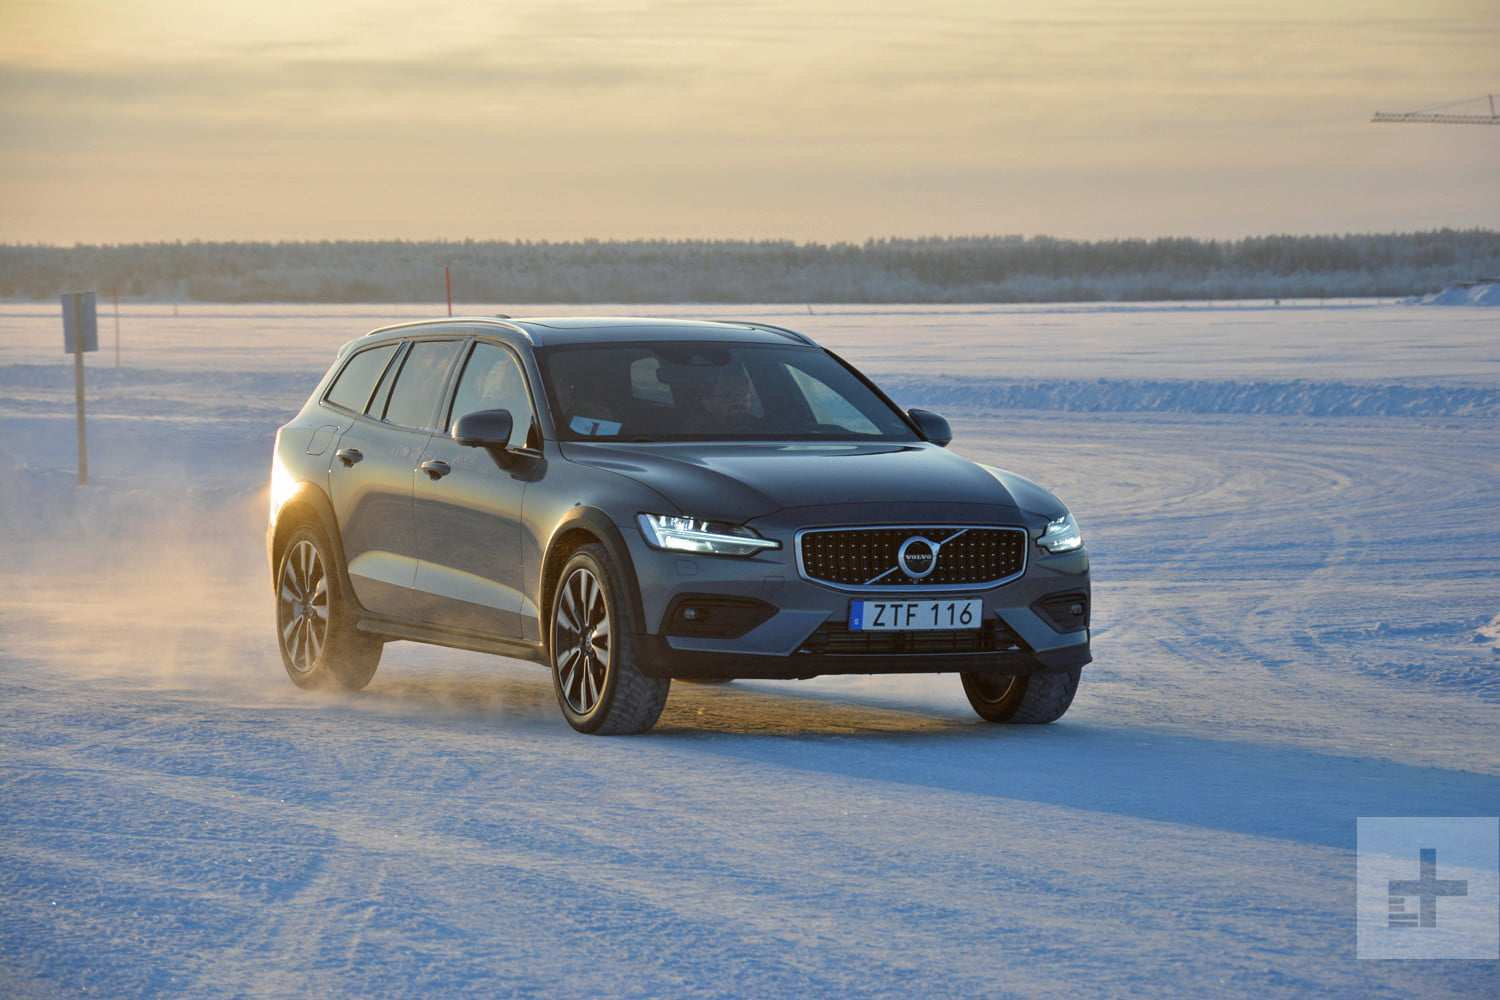 66 All New Volvo Cross Country 2020 Specs and Review by Volvo Cross Country 2020